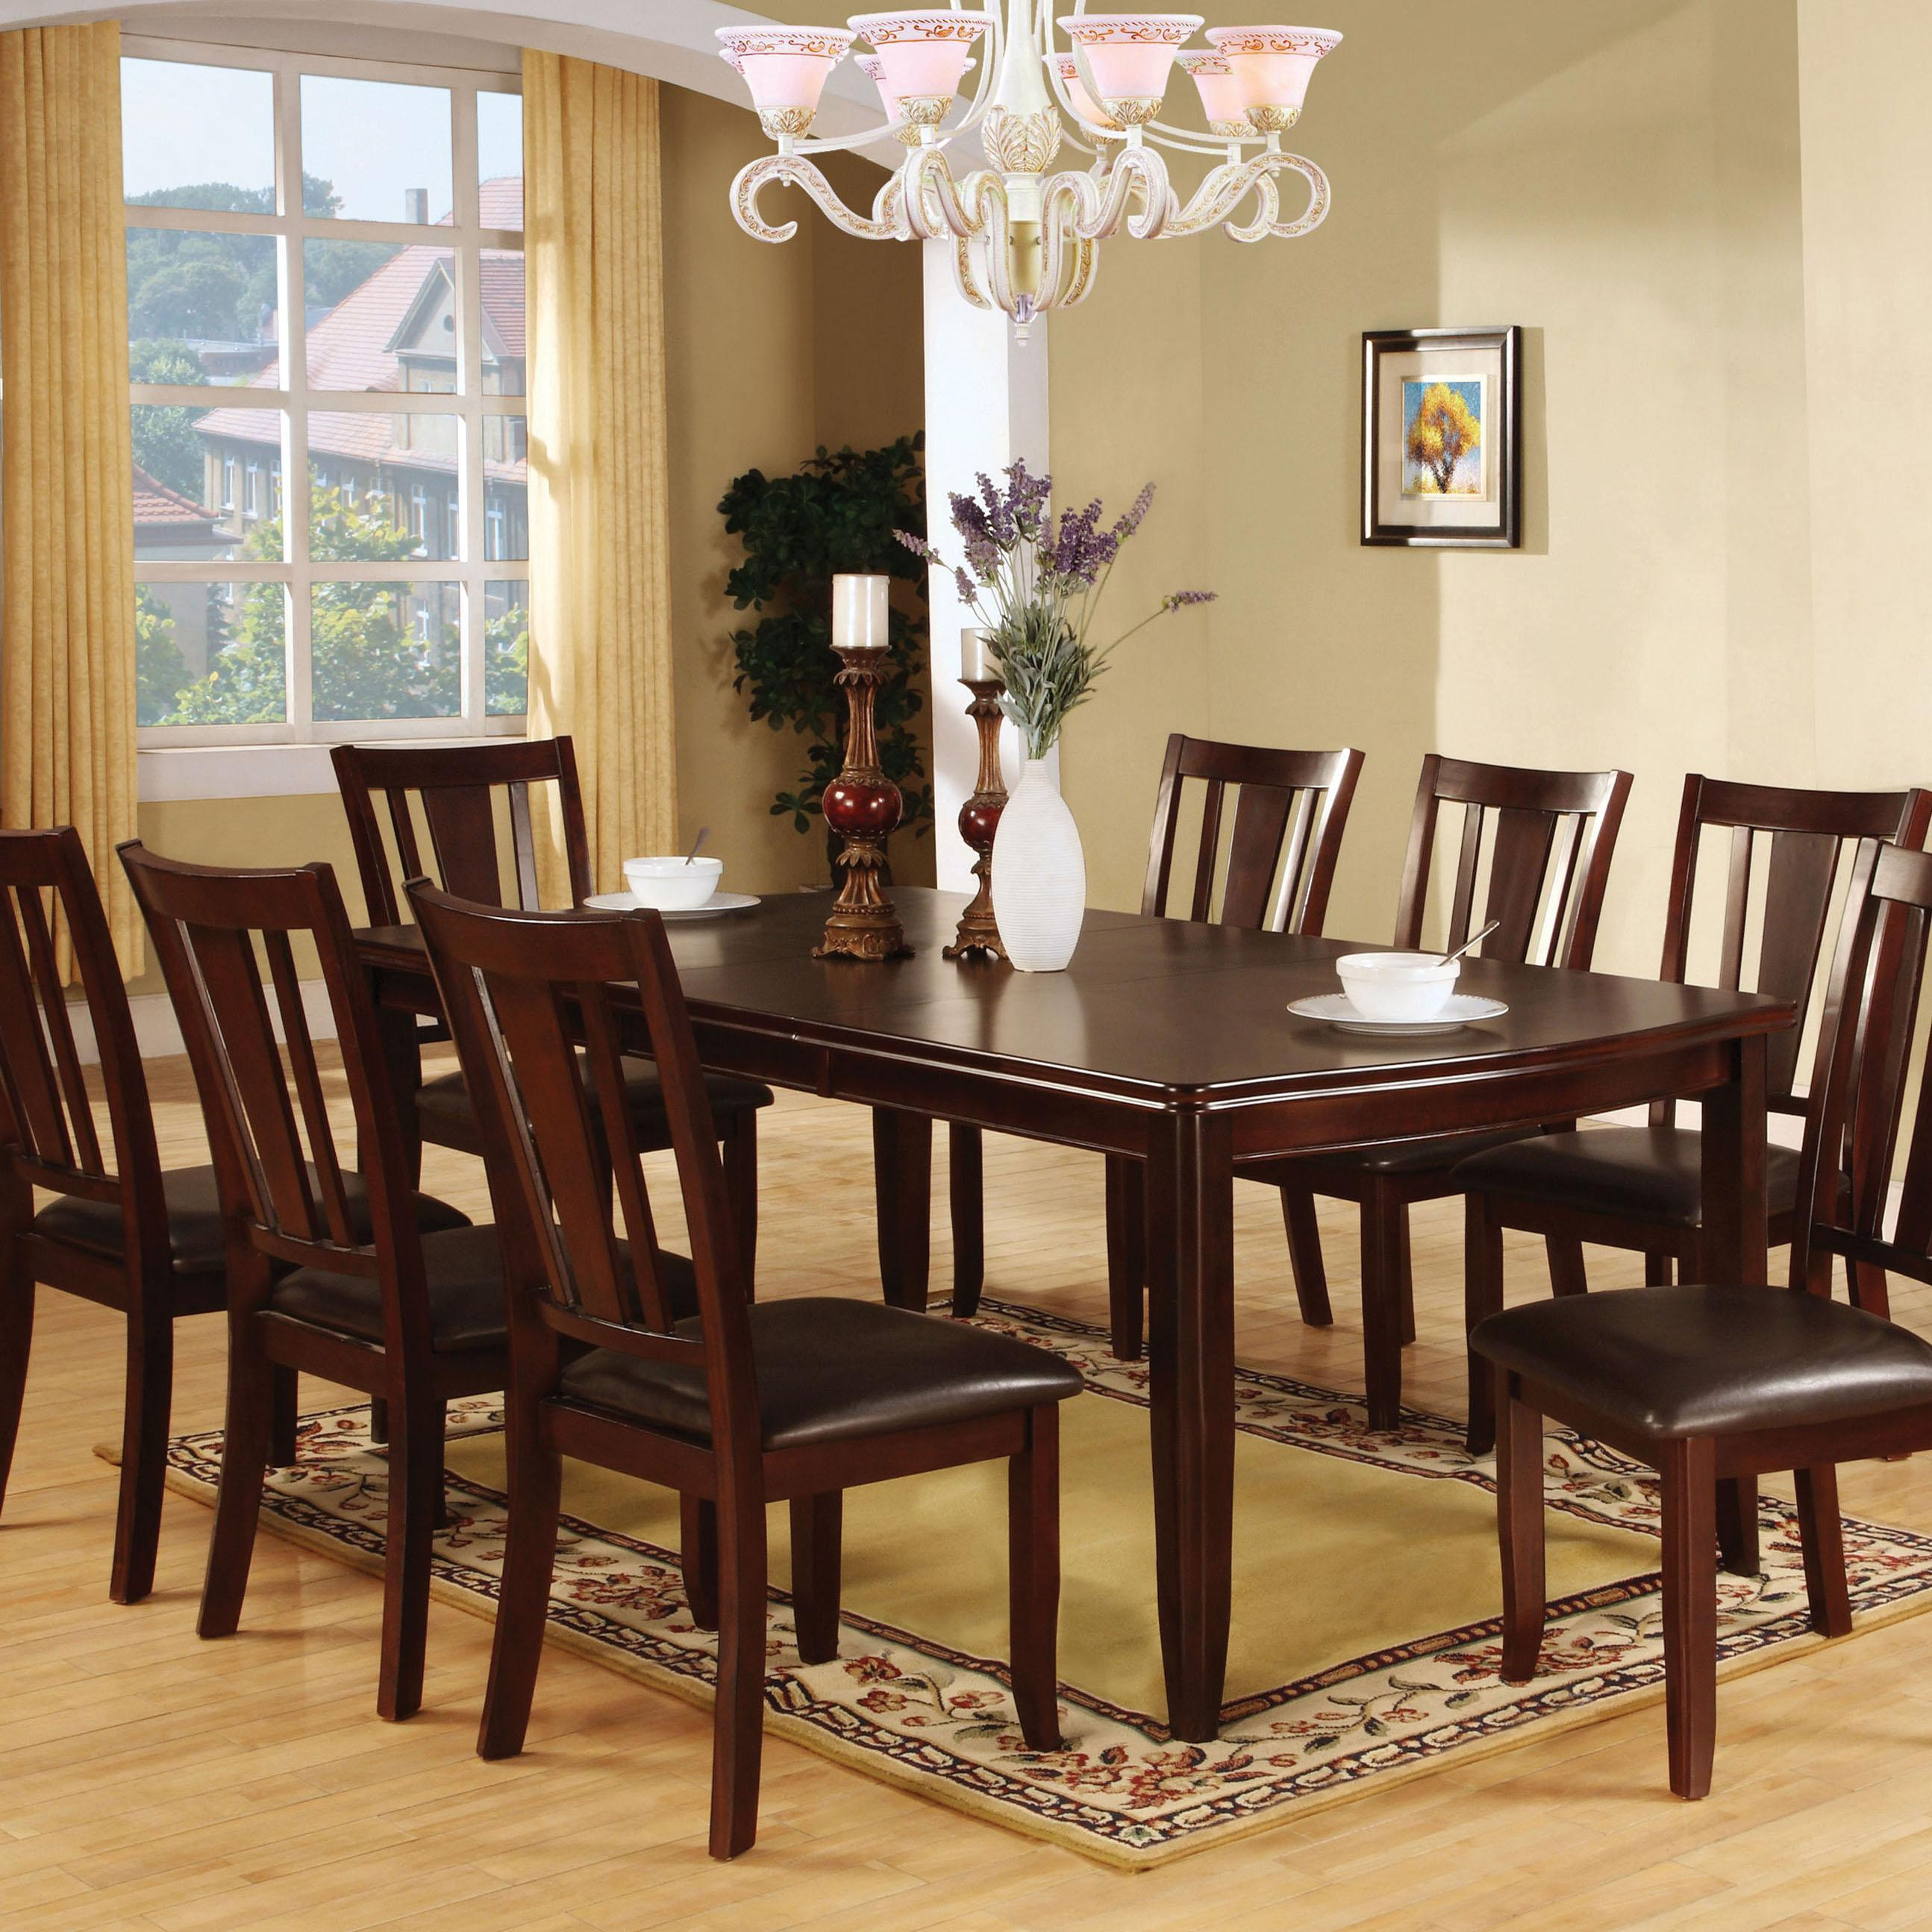 and piece belfort essentials dinning chair b room set item products mark dining kayla number table